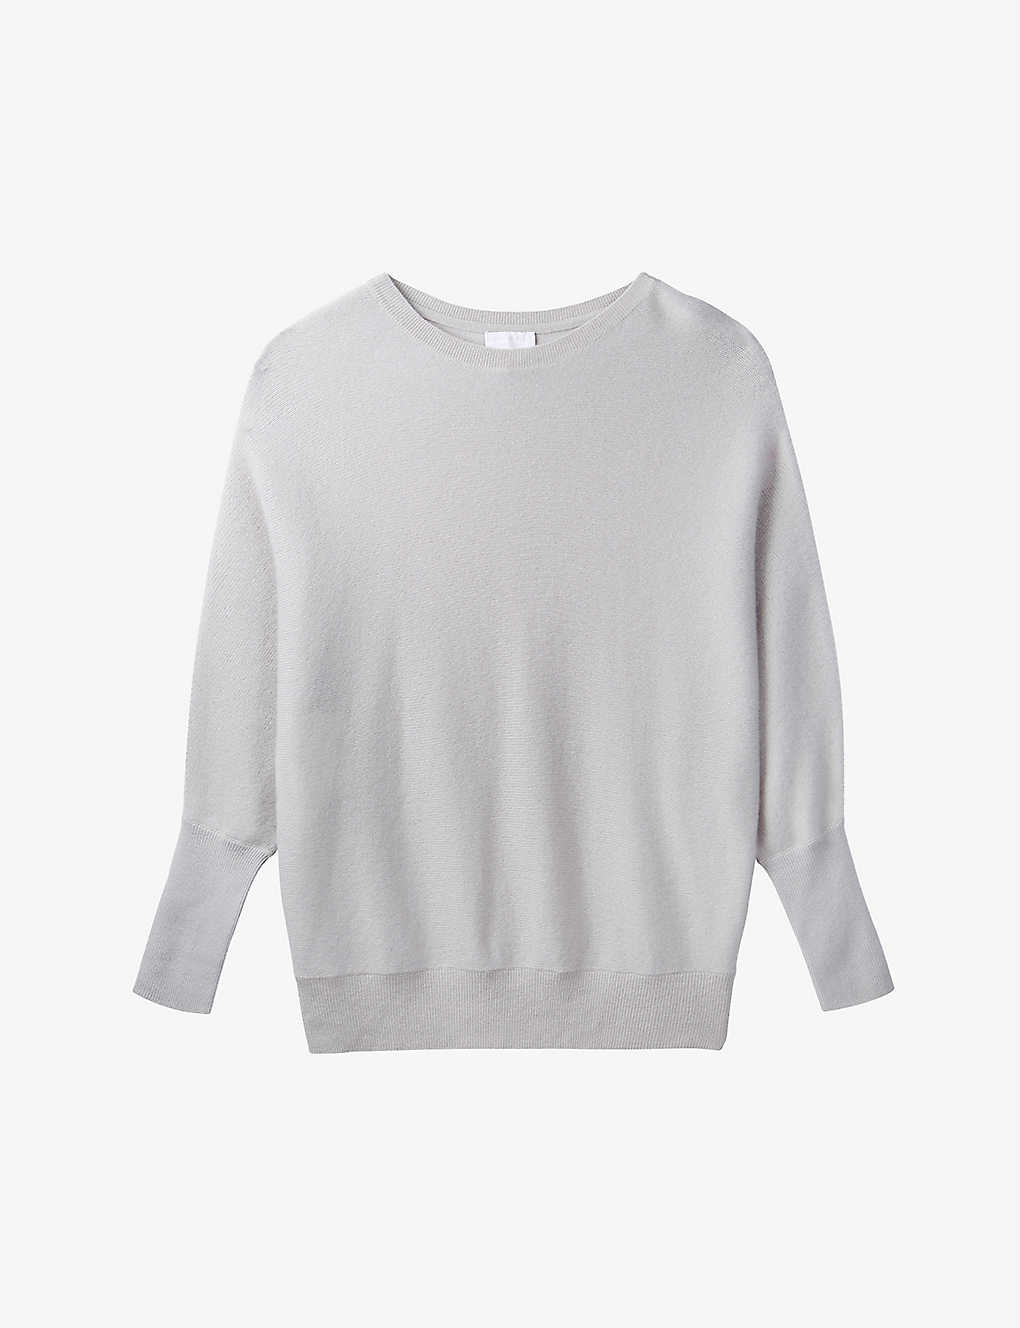 THE WHITE COMPANY: Relaxed-fit cashmere jumper